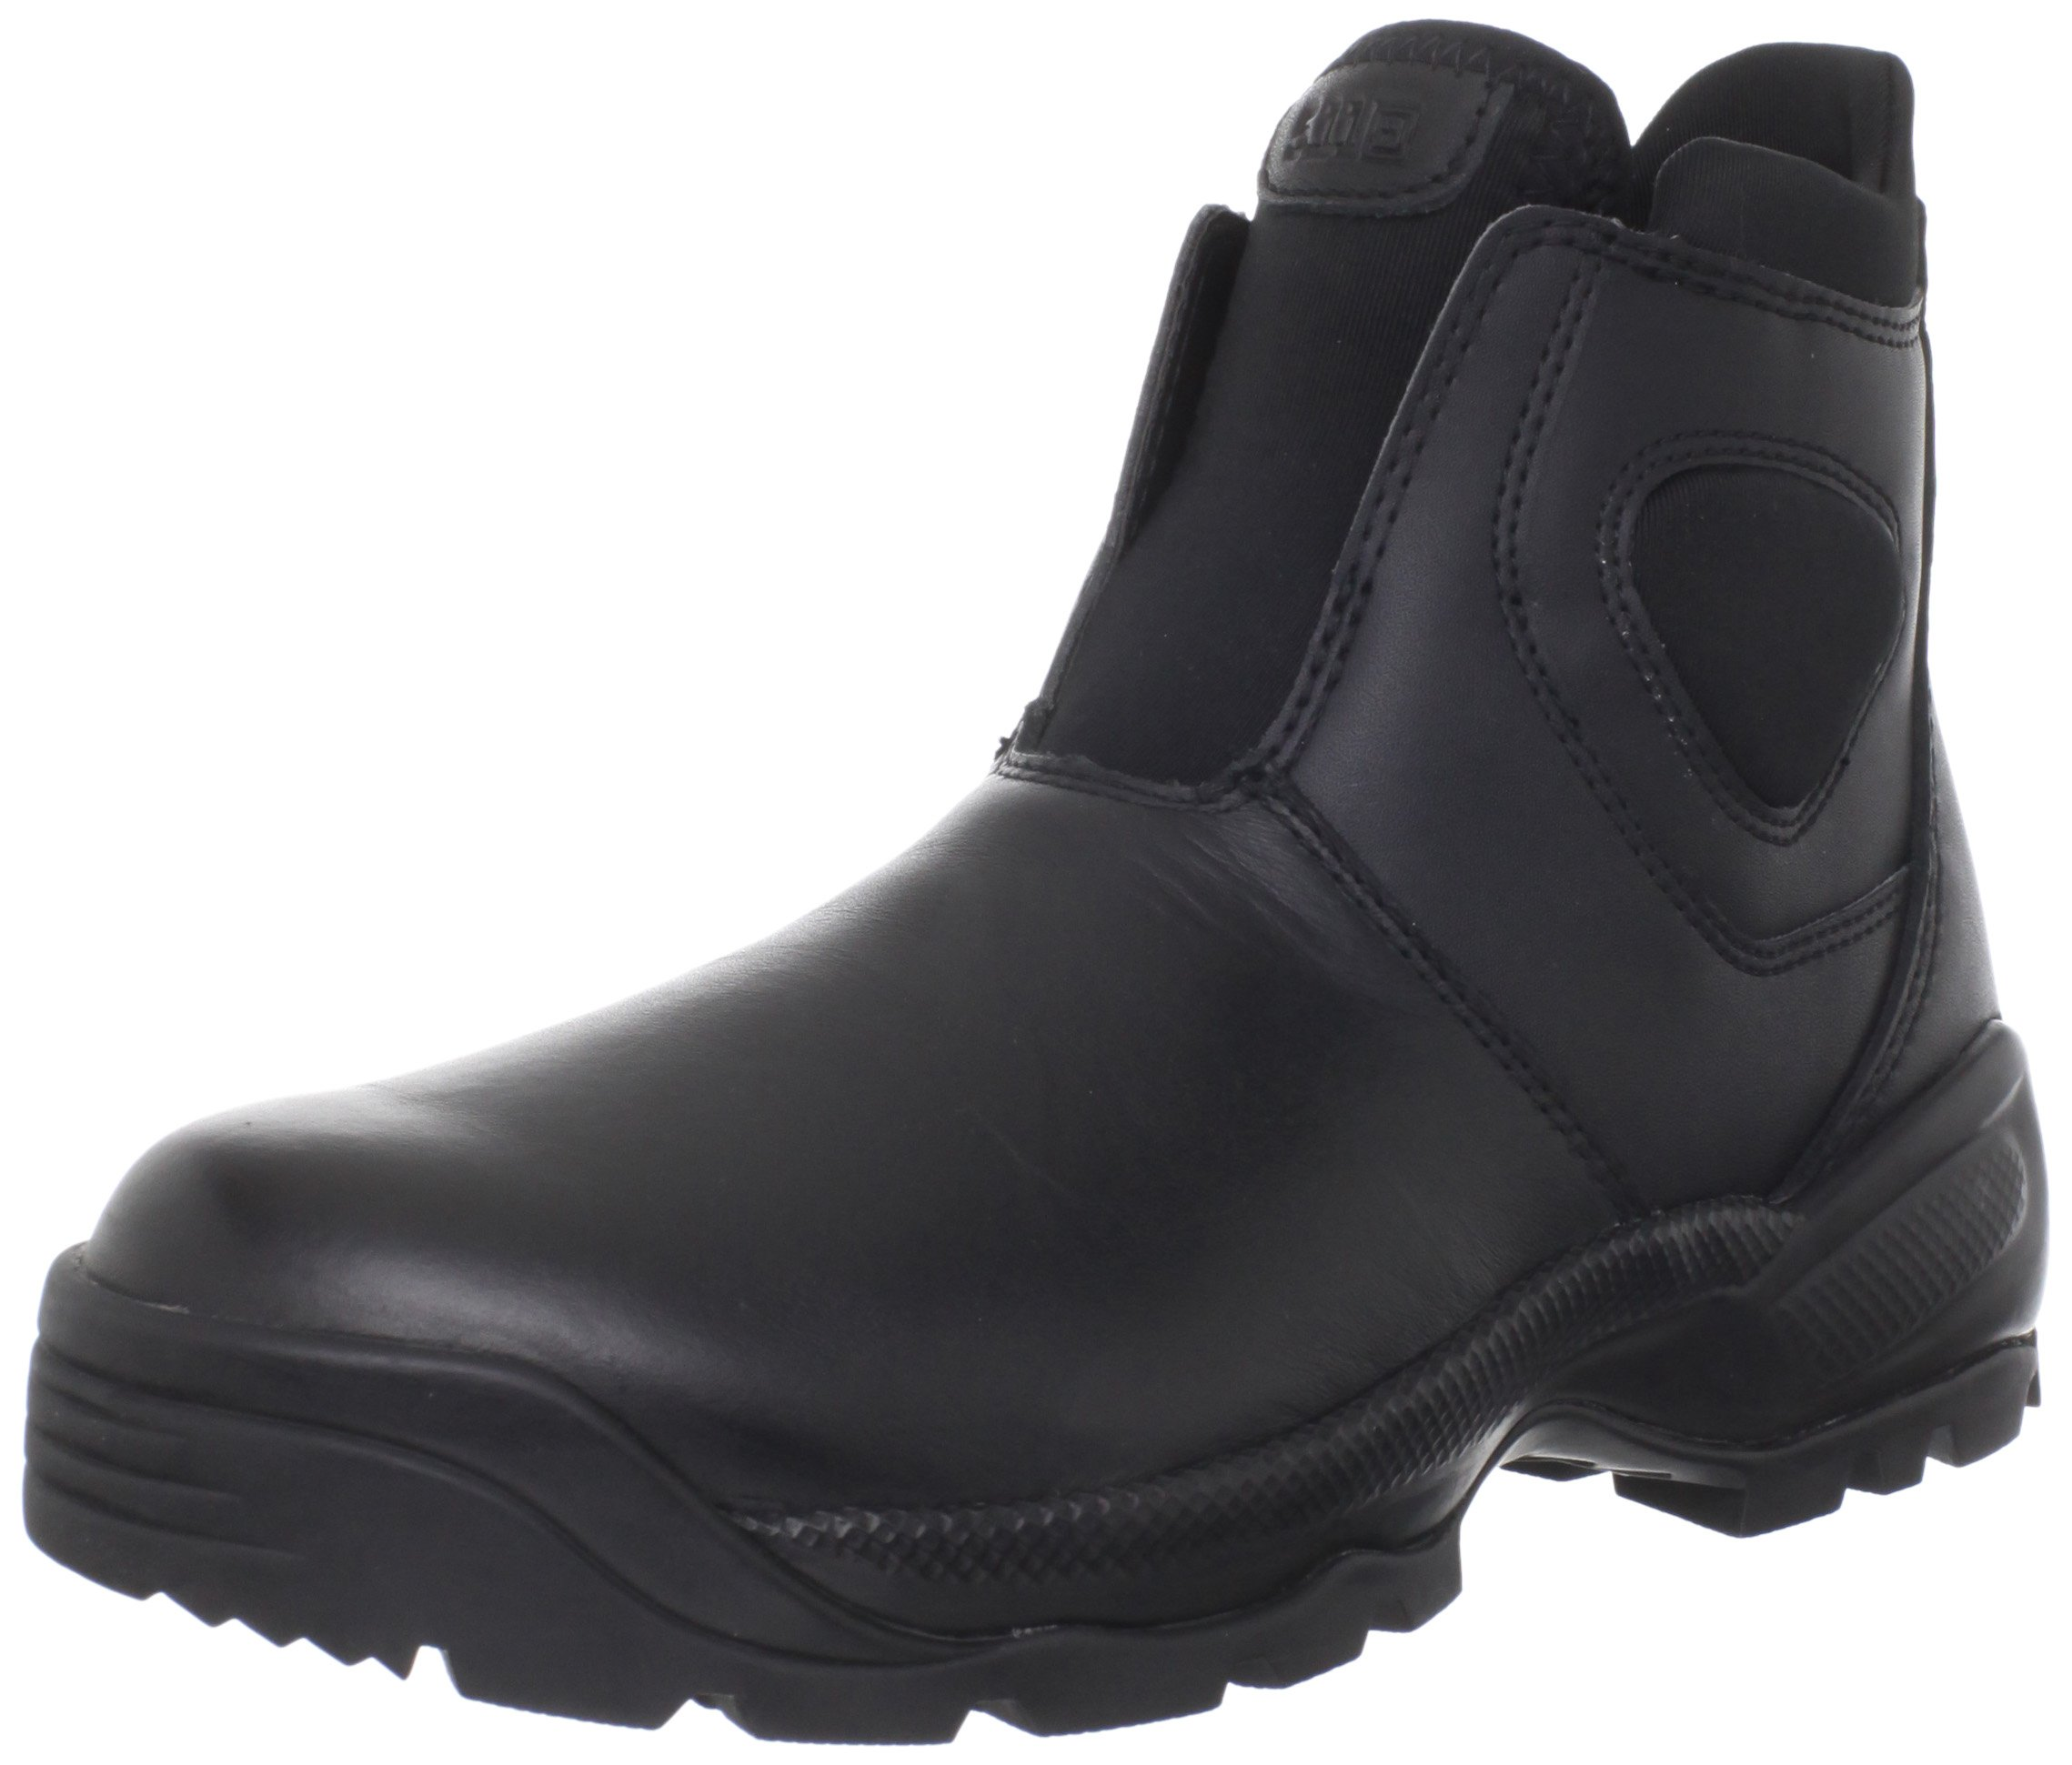 5.11 Tactical Men's Company Military Work Boots 2.0, Composite Shank, Leather, Style 12032